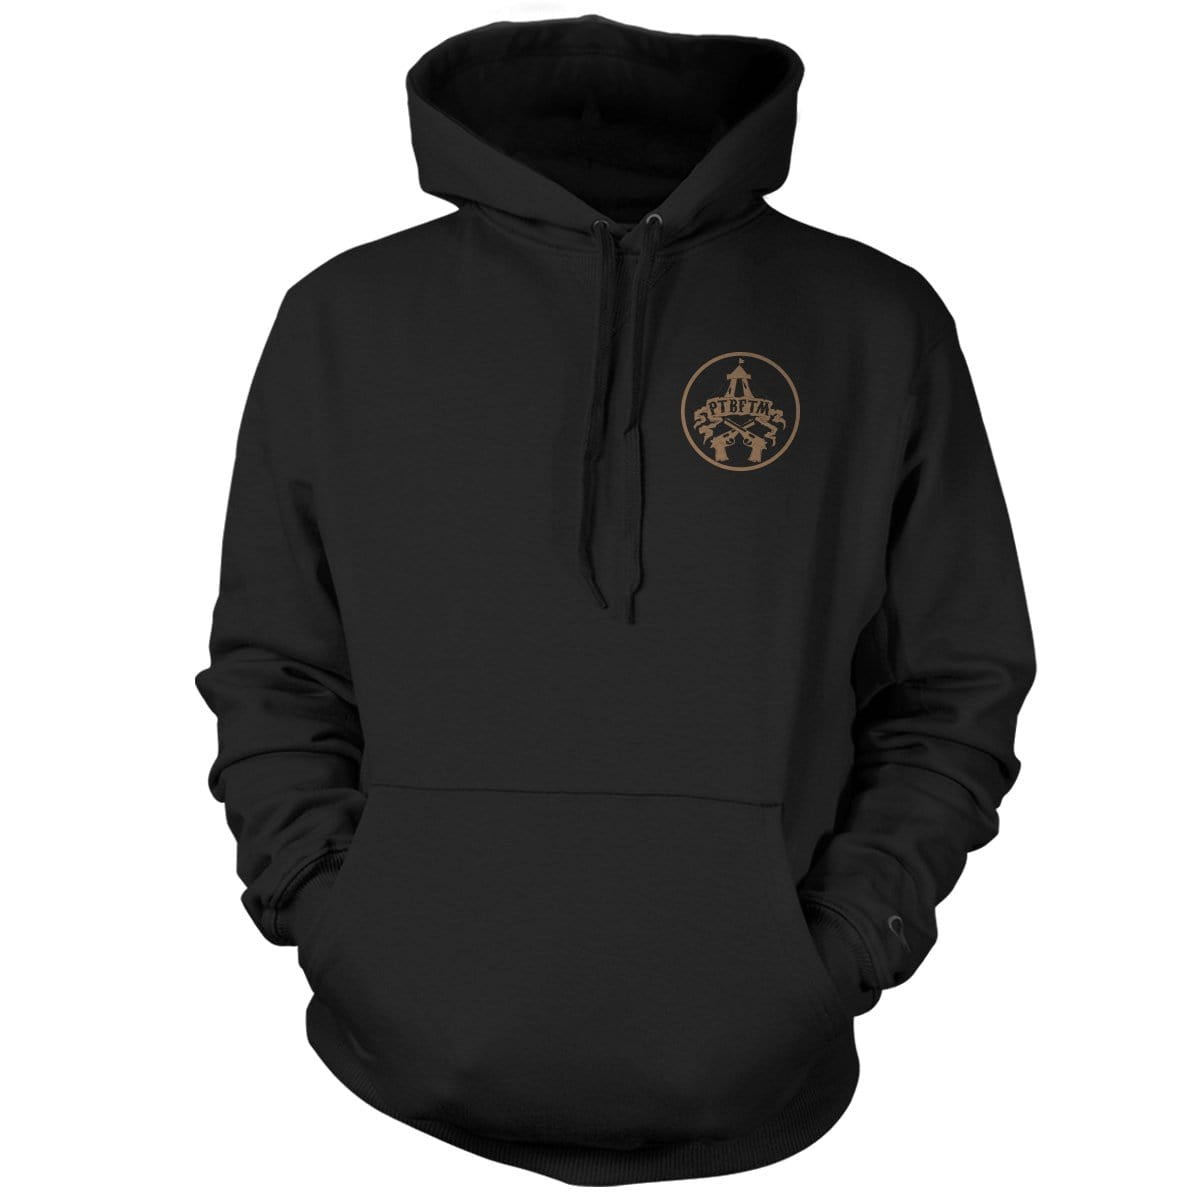 PHUMC Pistol Circus Chapter Hoodie - Black - Hoodies - Pipe Hitters Union